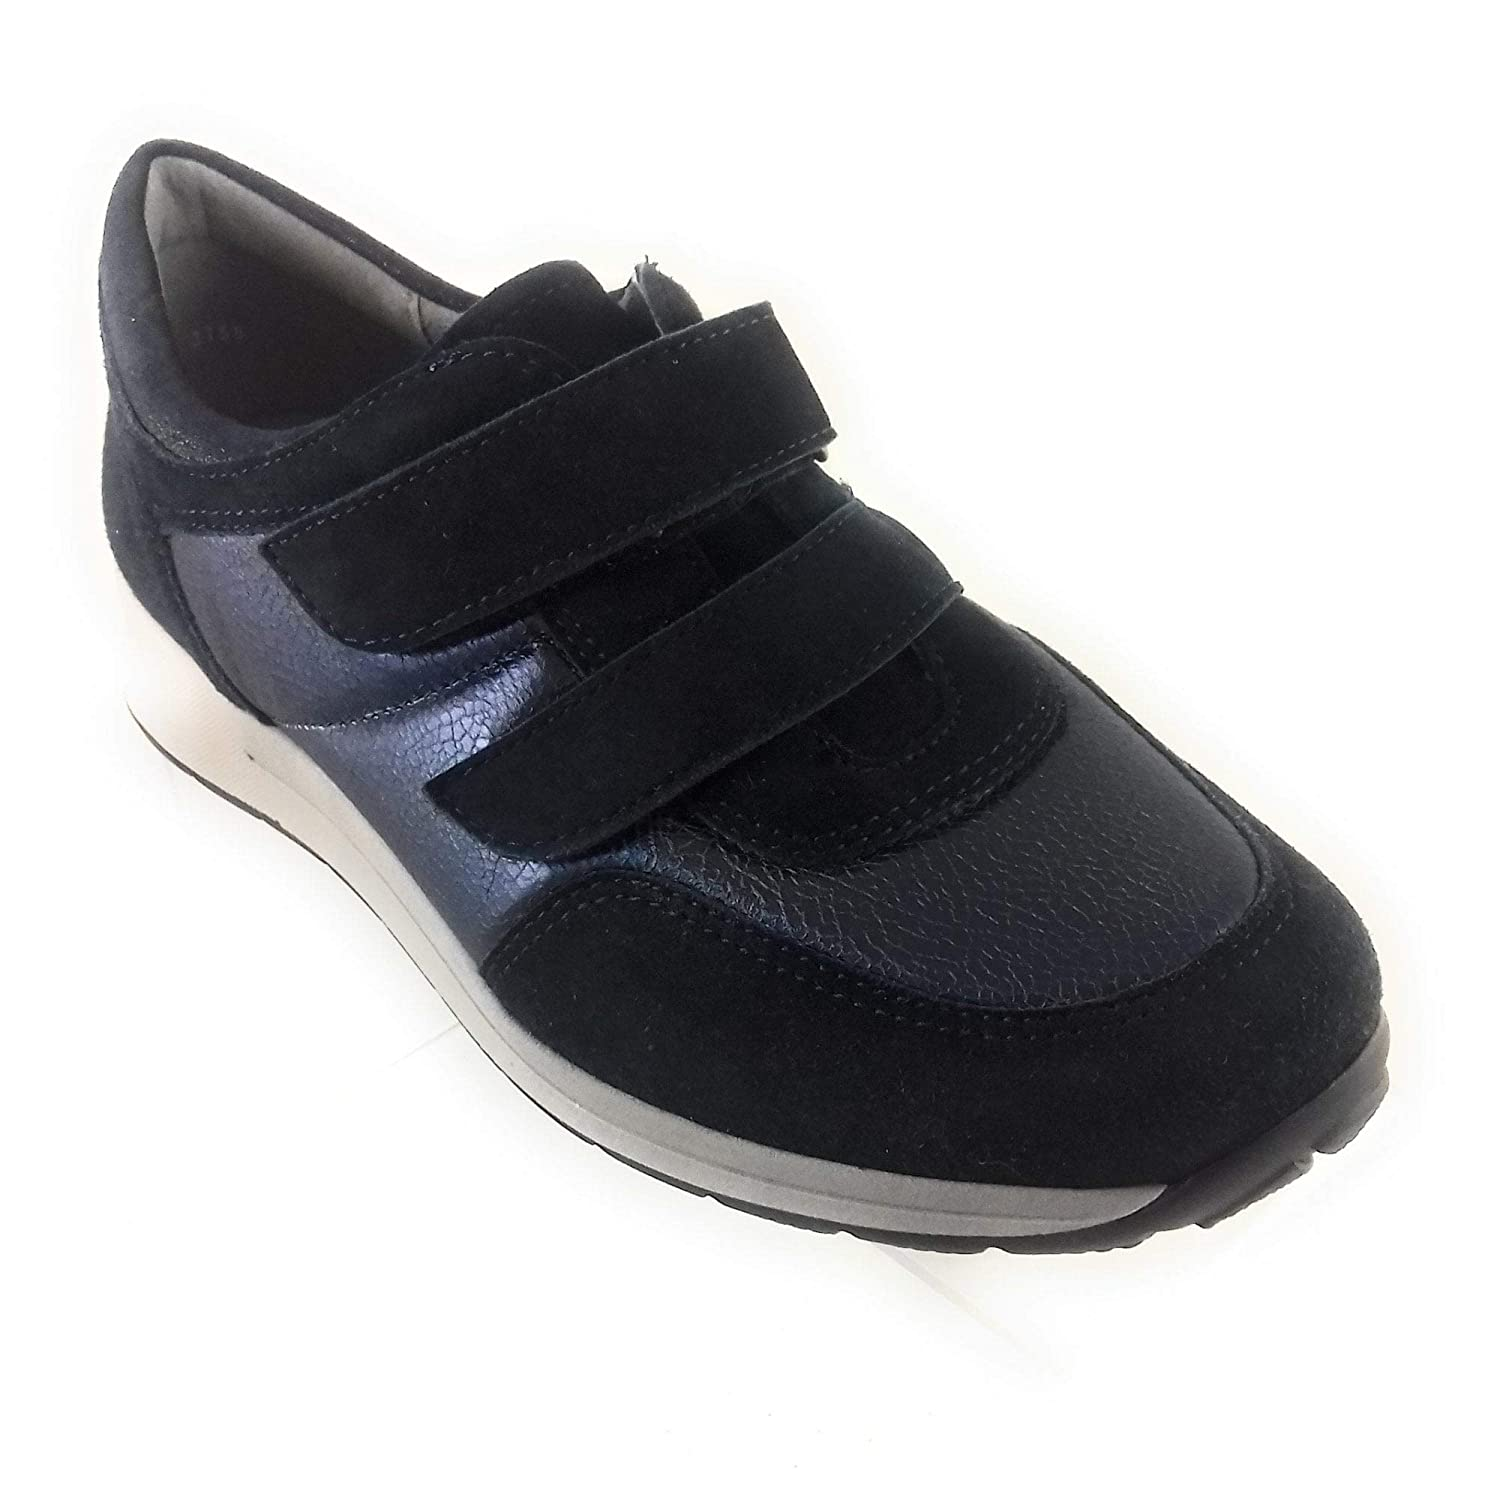 f963c7fa5751 ARA 12-15016 Oslo Navy Leather and Suede Trainer 4.5  Amazon.co.uk  Shoes    Bags